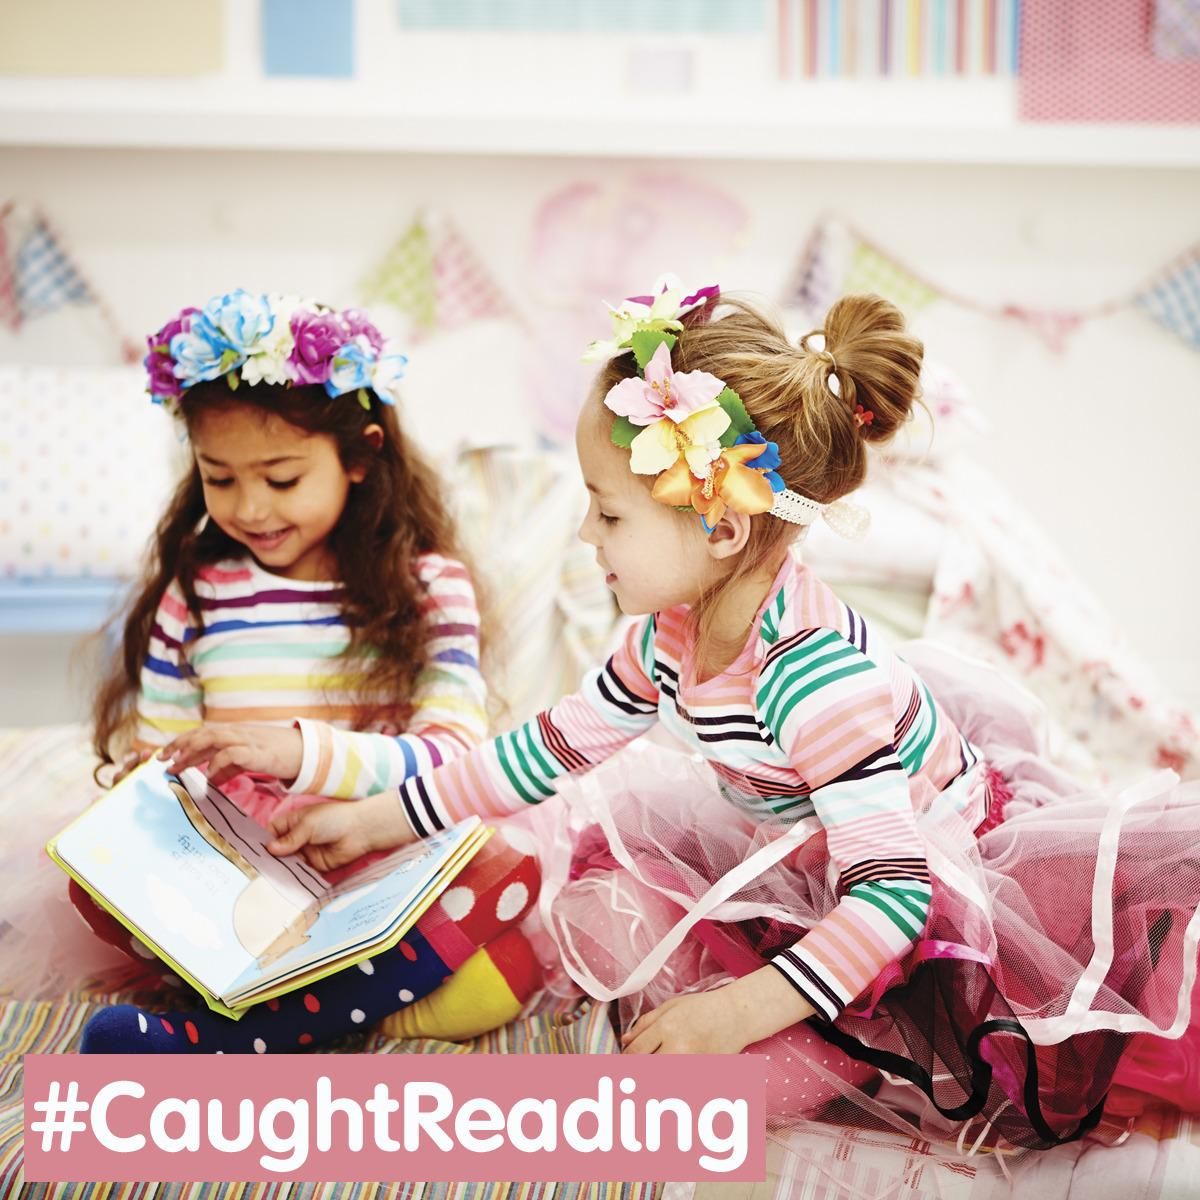 Tweet us a photo of your little one reading with #CaughtReading to be in with a chance of winning a bundle of books! http://t.co/DZ61IumdTT